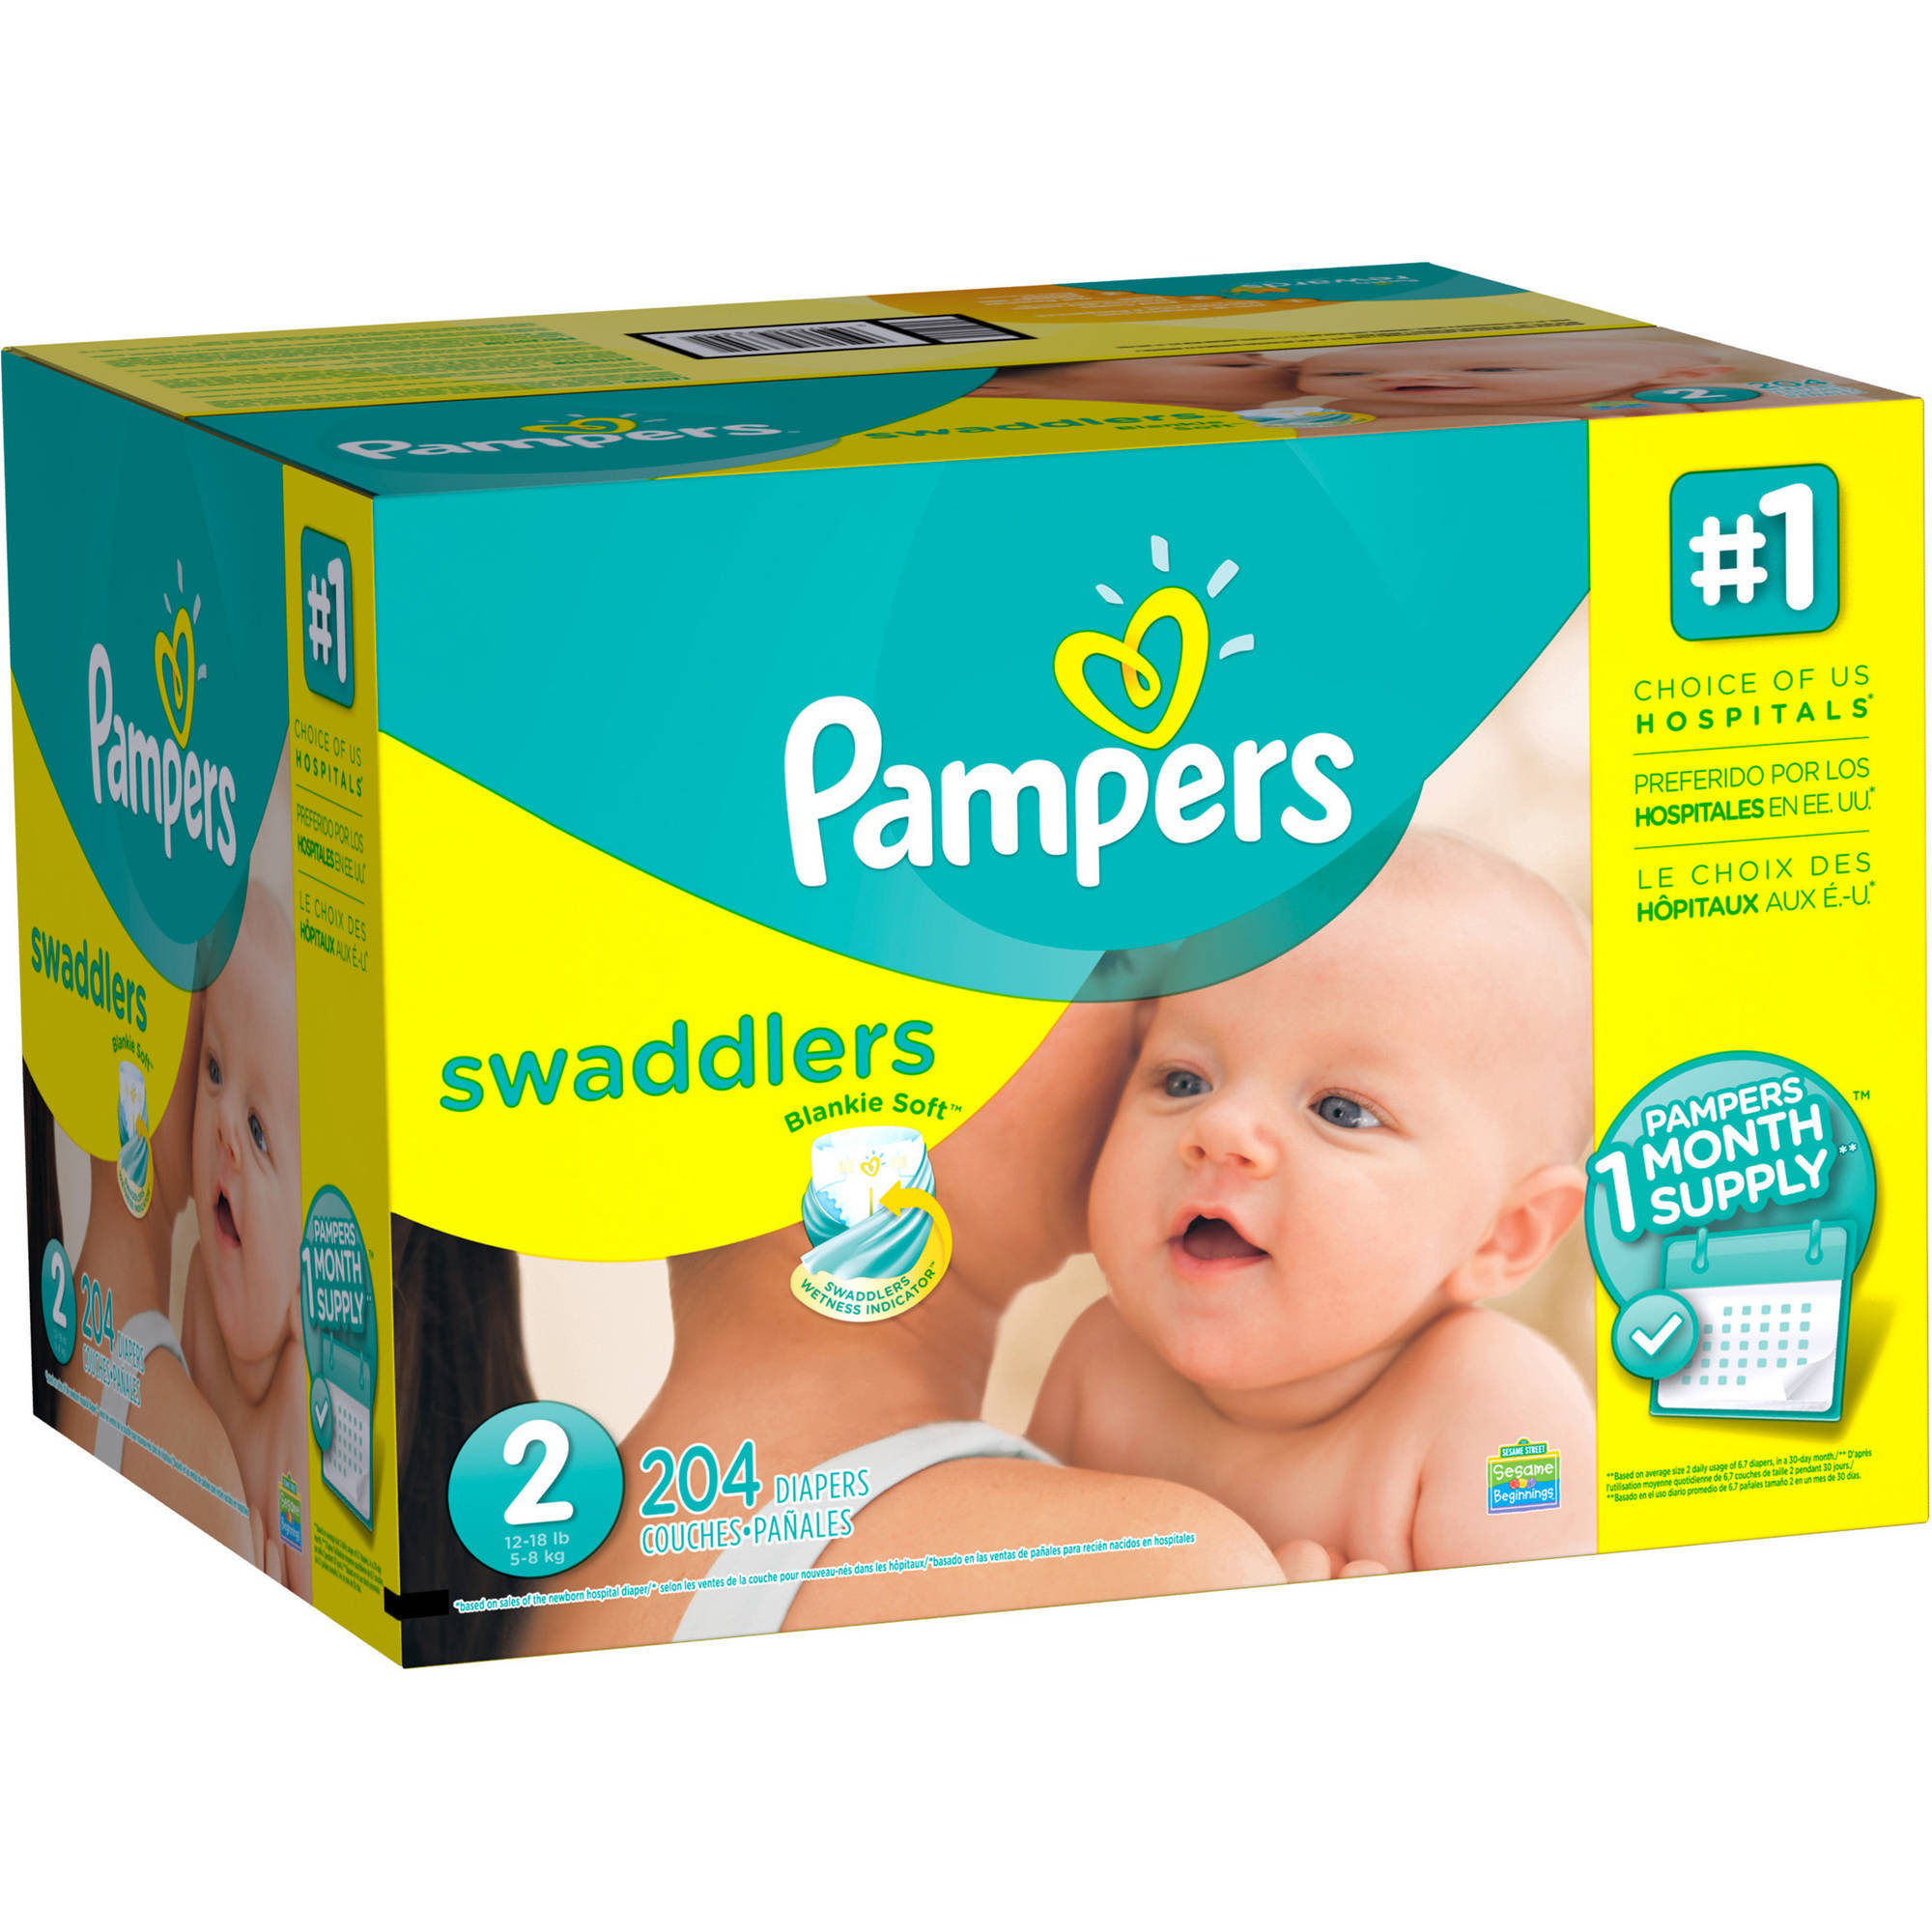 **Available in sizes NB–2. * Pampers® Blankie Soft™ comfort and protection * Pampers Swaddlers diapers are the #1 Choice of Hospitals (based on sales of the newborn hospital diaper) * Swaddlers wetness indicator tells you when your baby might need a change * Our unique Absorb Away Liner™ pulls wetness and mess away from your baby's skin.